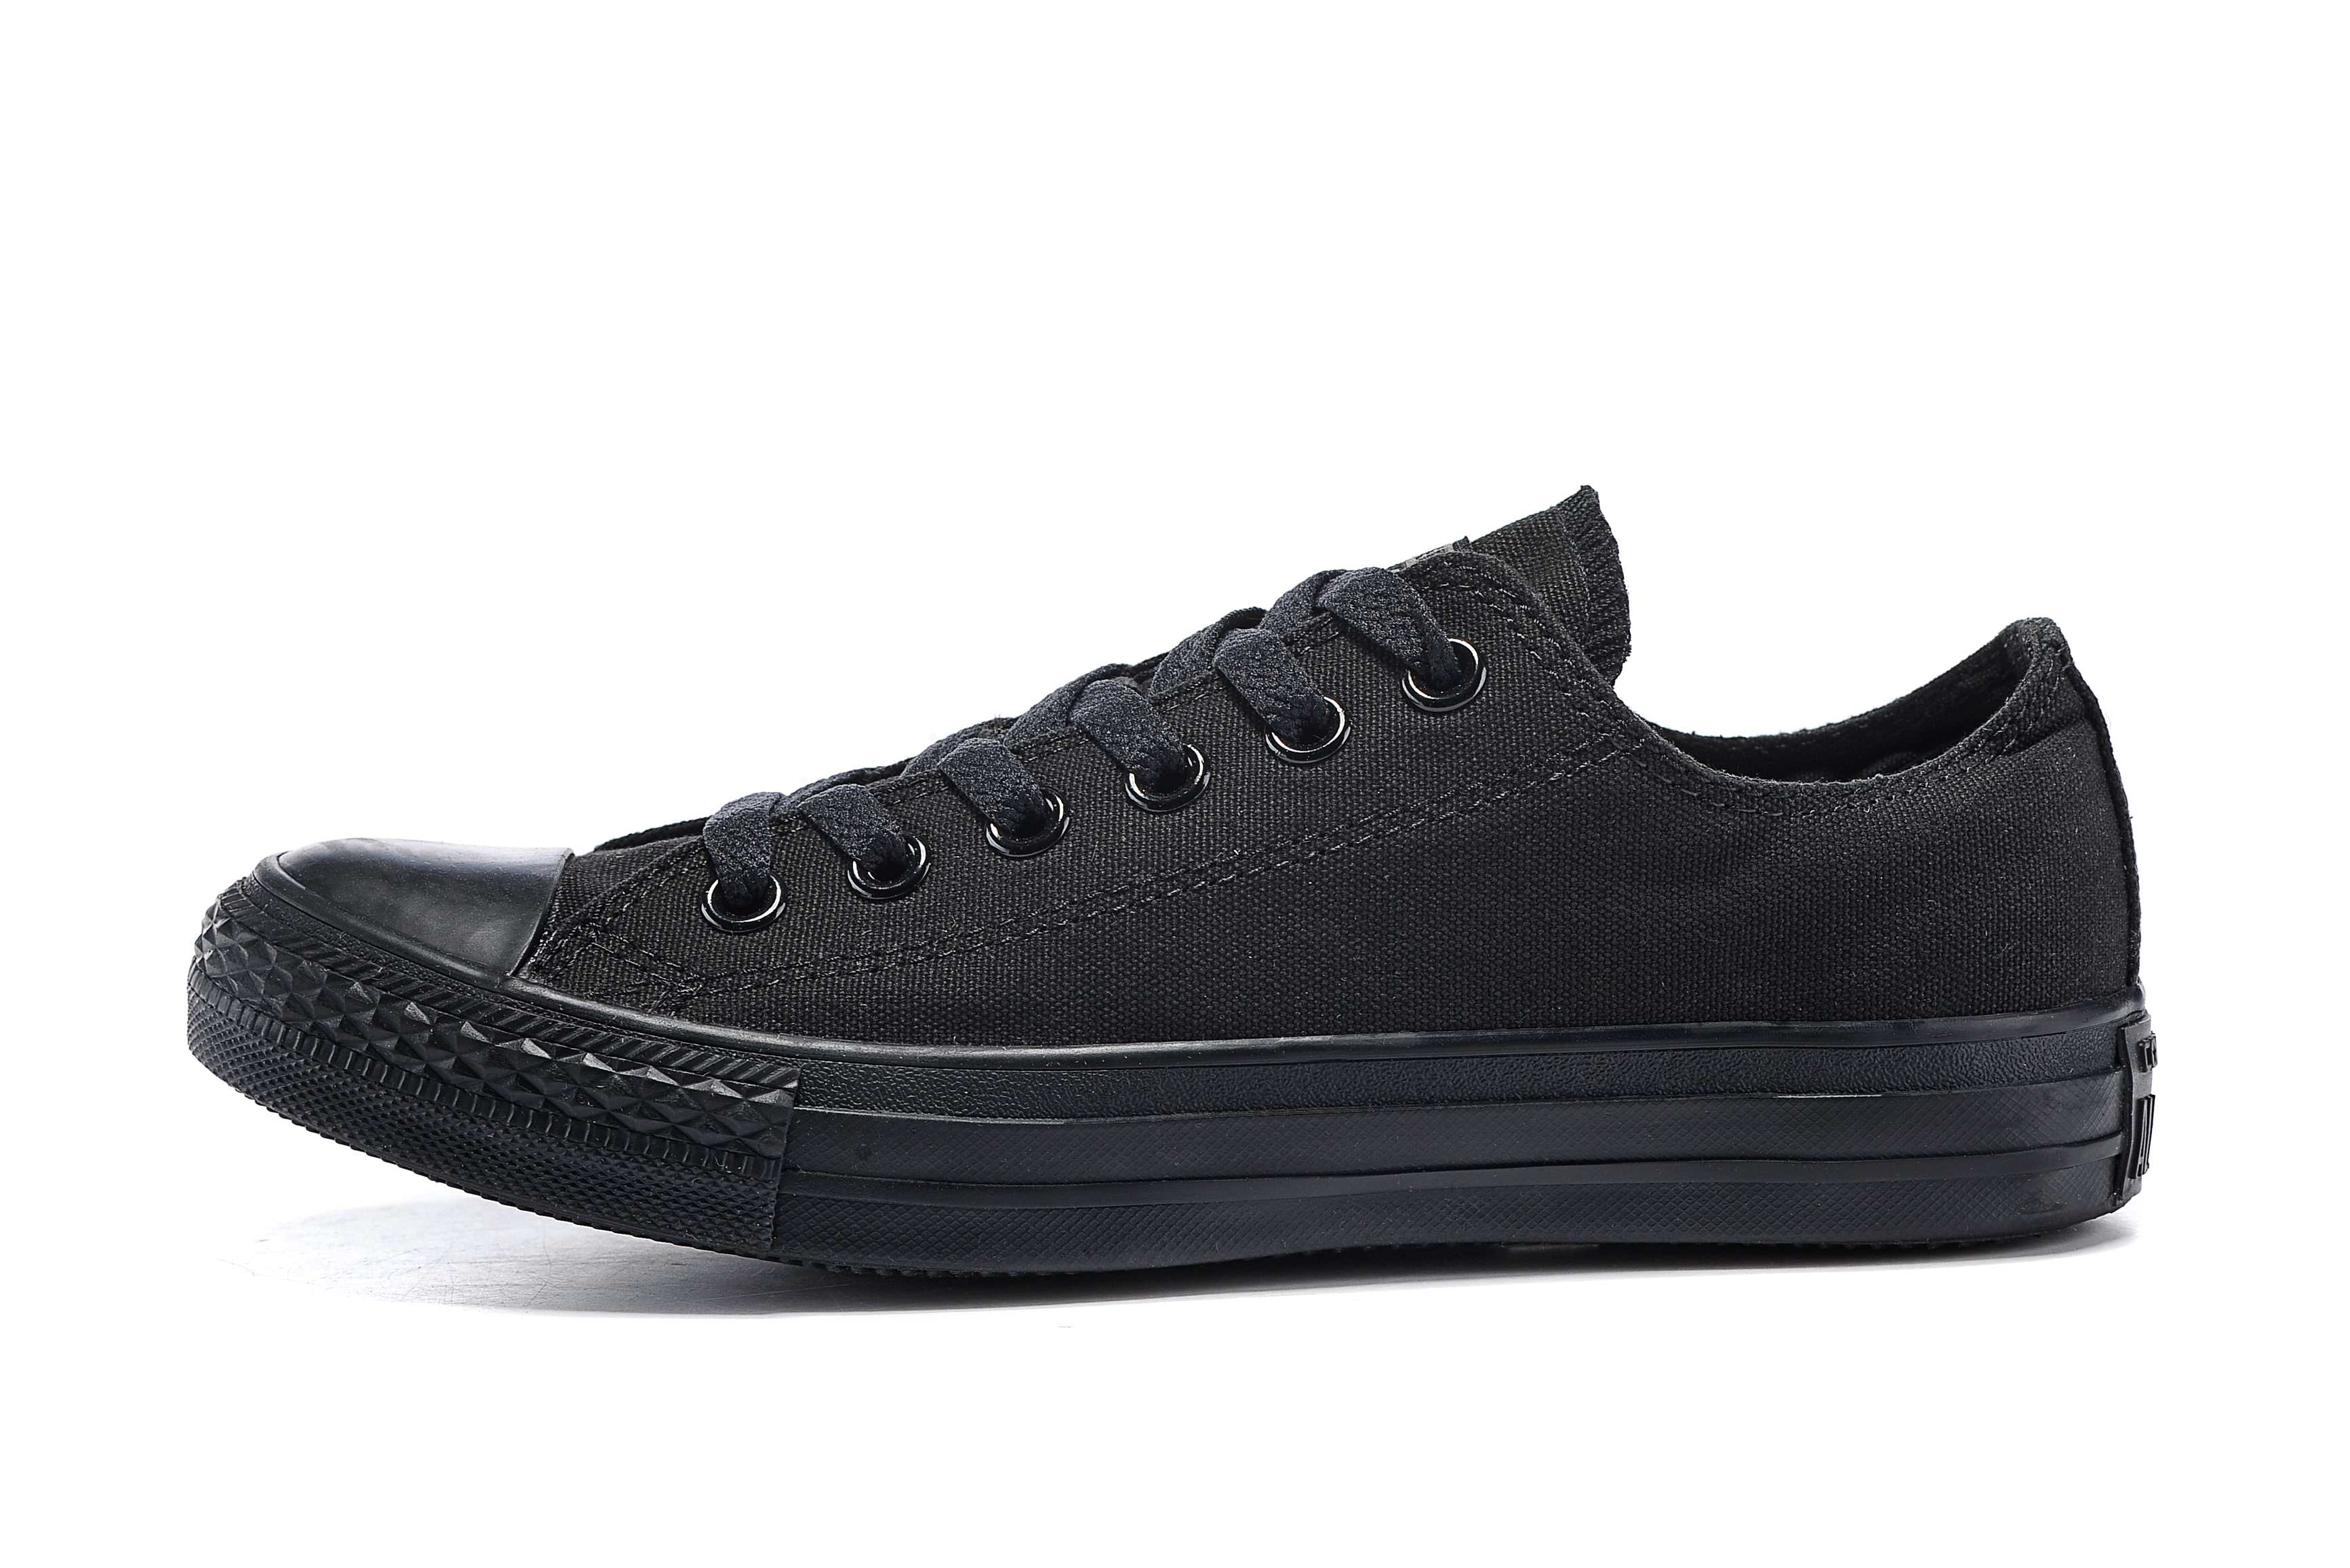 Converse All Star Men's And Women's Sneakers For Men Women Canvas Shoes All Black Low Classic Skateboarding Shoes